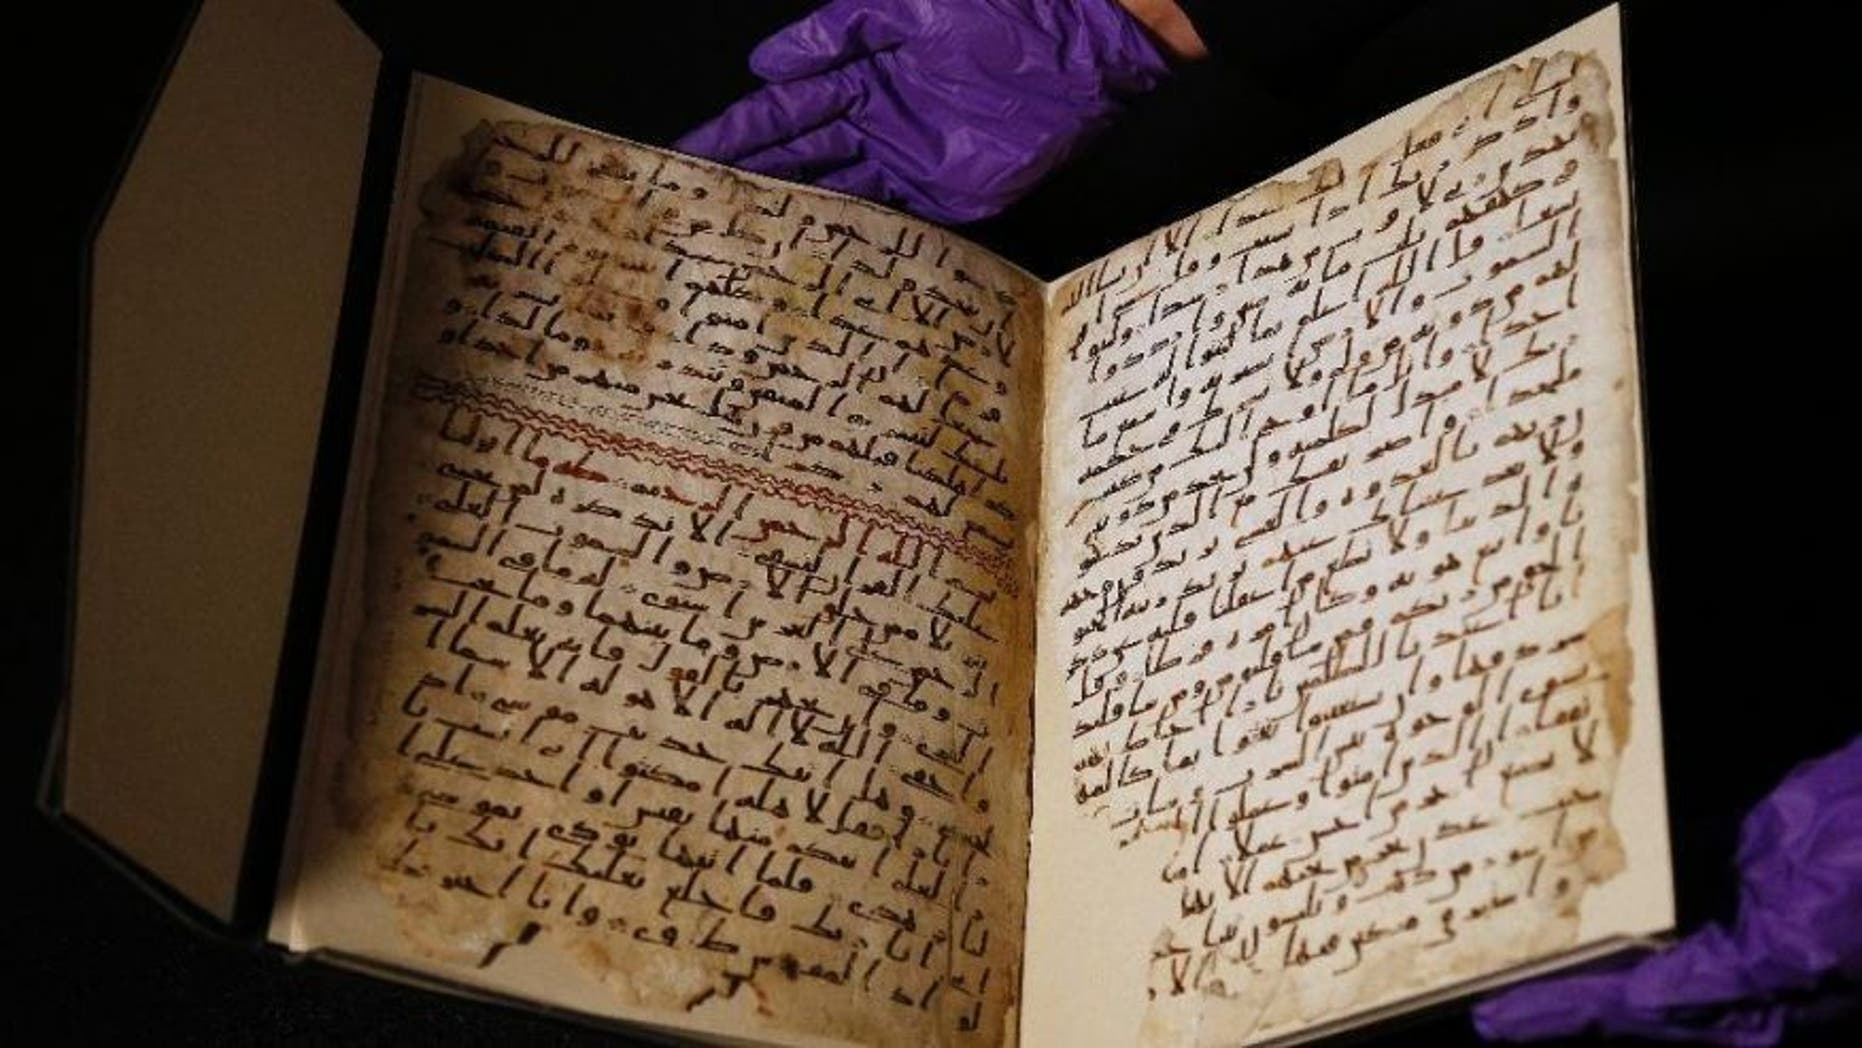 Authorities launched an investigation Thursday after two copies of the Koran were found inside a toilet bowl at a Texas college.